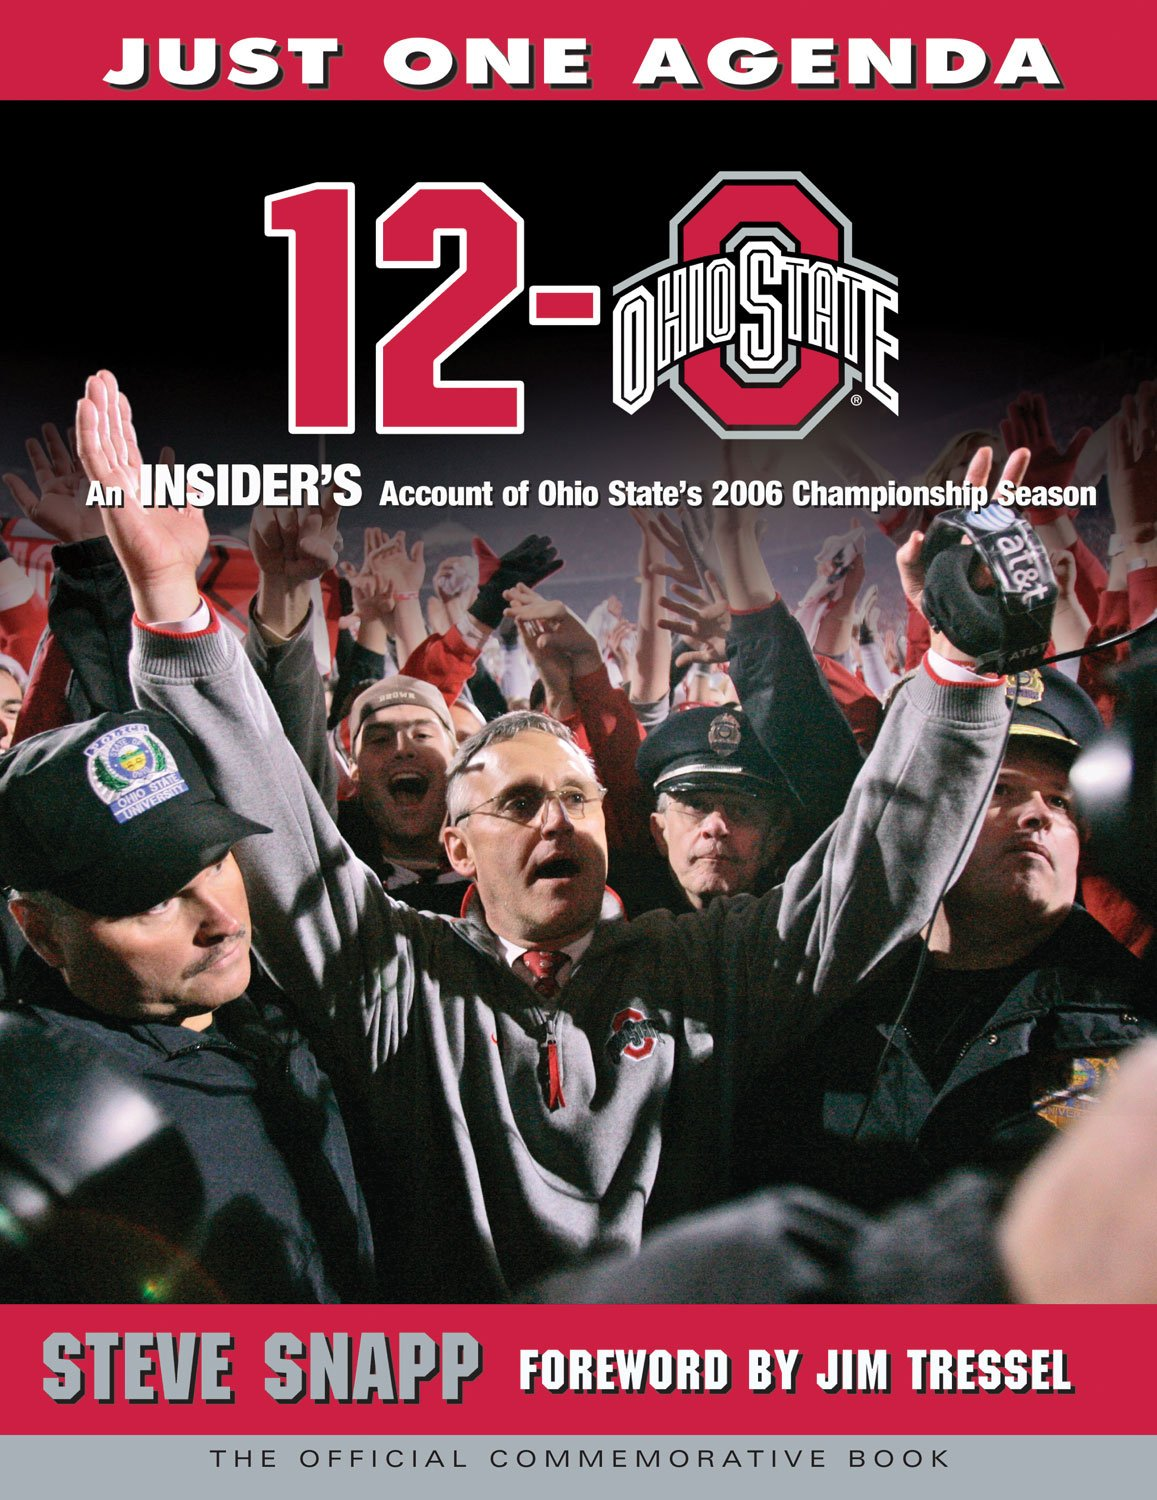 12-0: An Insider's Account of Ohio State's 2006 Championship Season: The Official Commemorative Book PDF